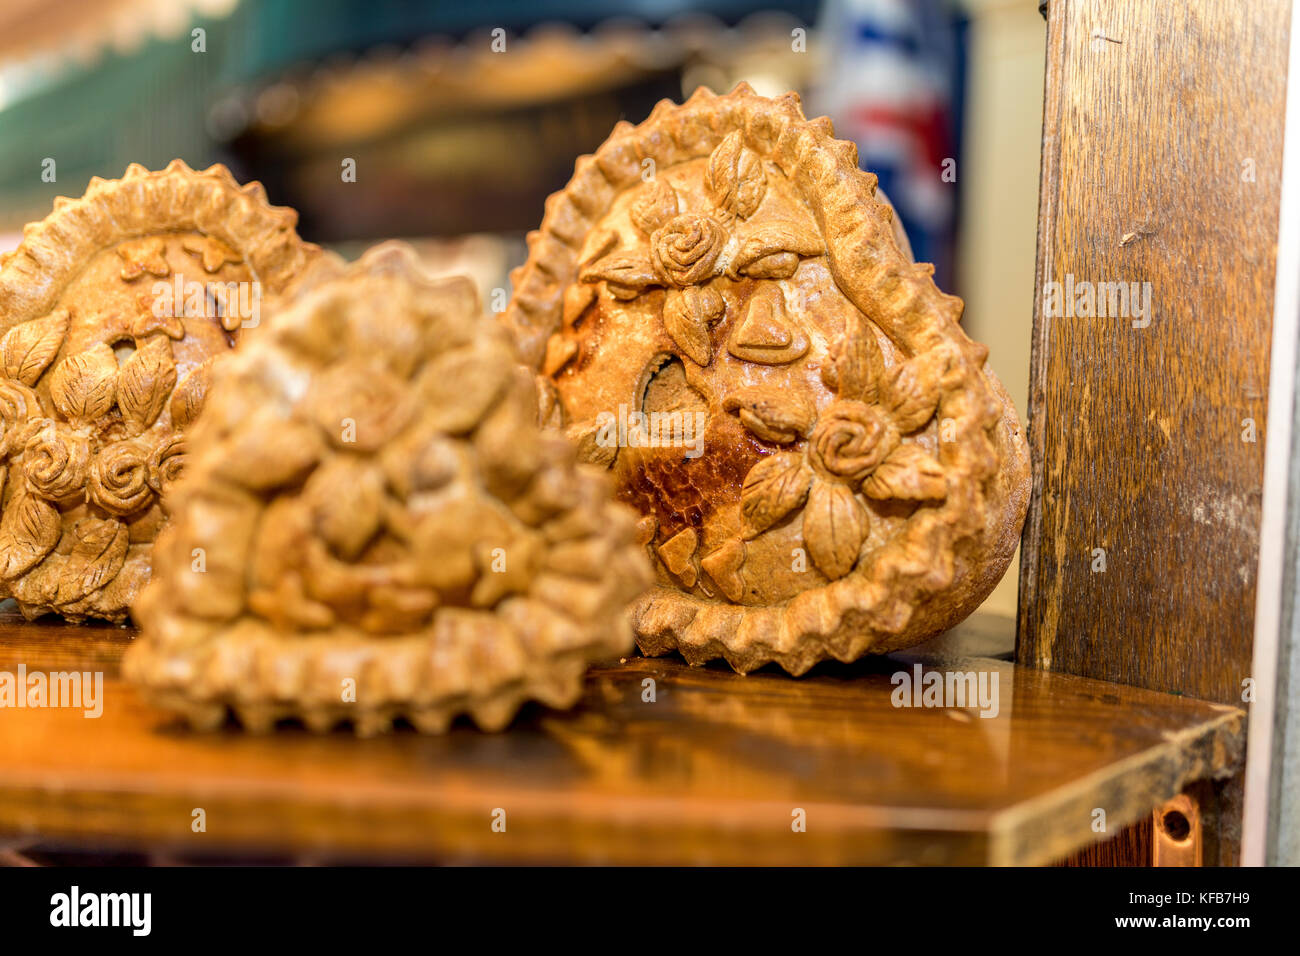 Prize winning pork pie display with beautiful ornate crusty pastry featuring floral and rose flower patterns on - Stock Image